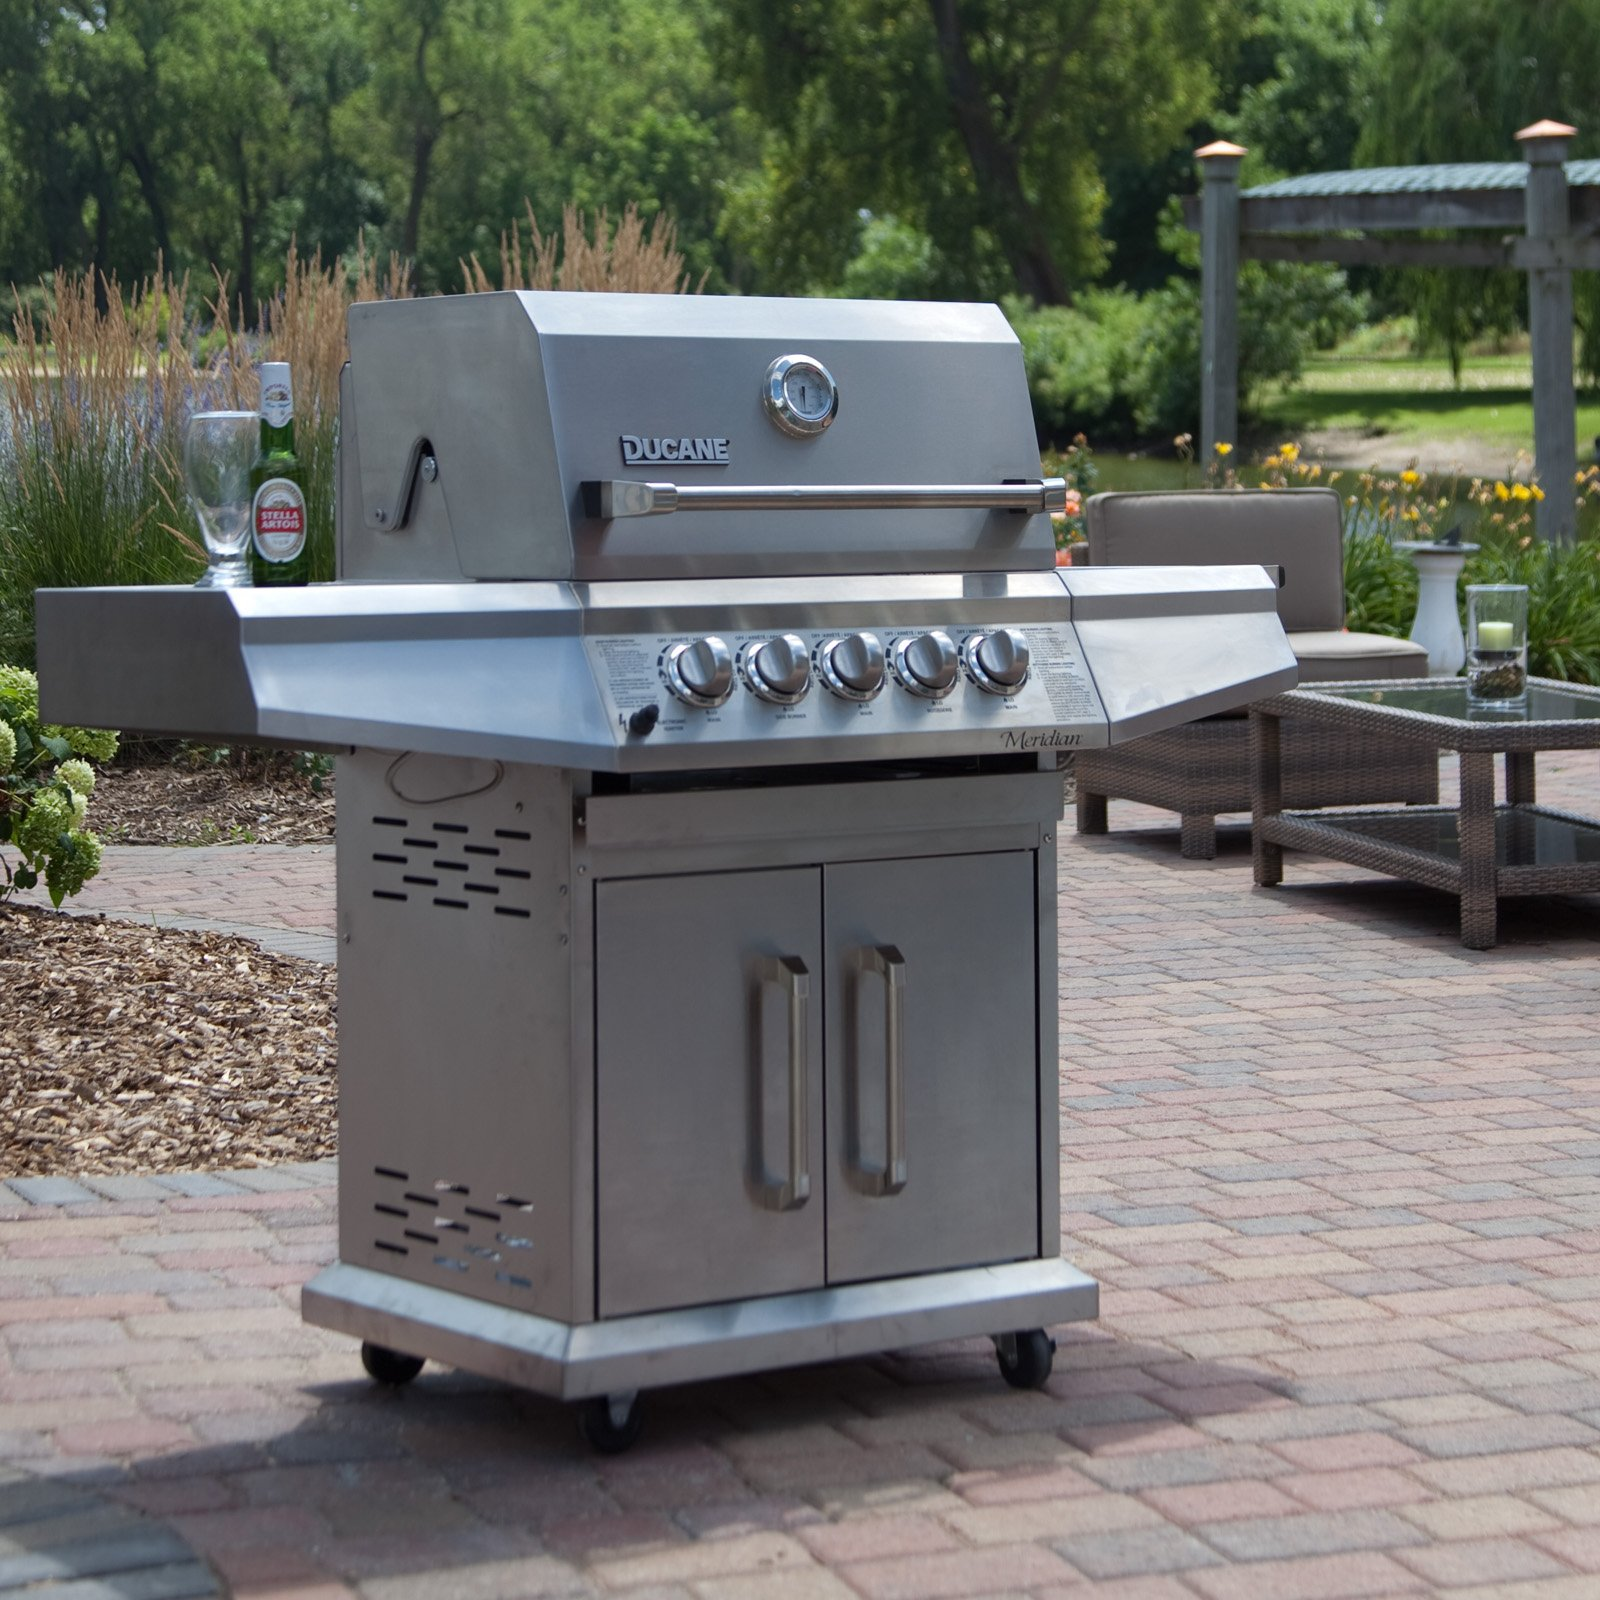 Outdoor propane grills are one the most popular grills on the market